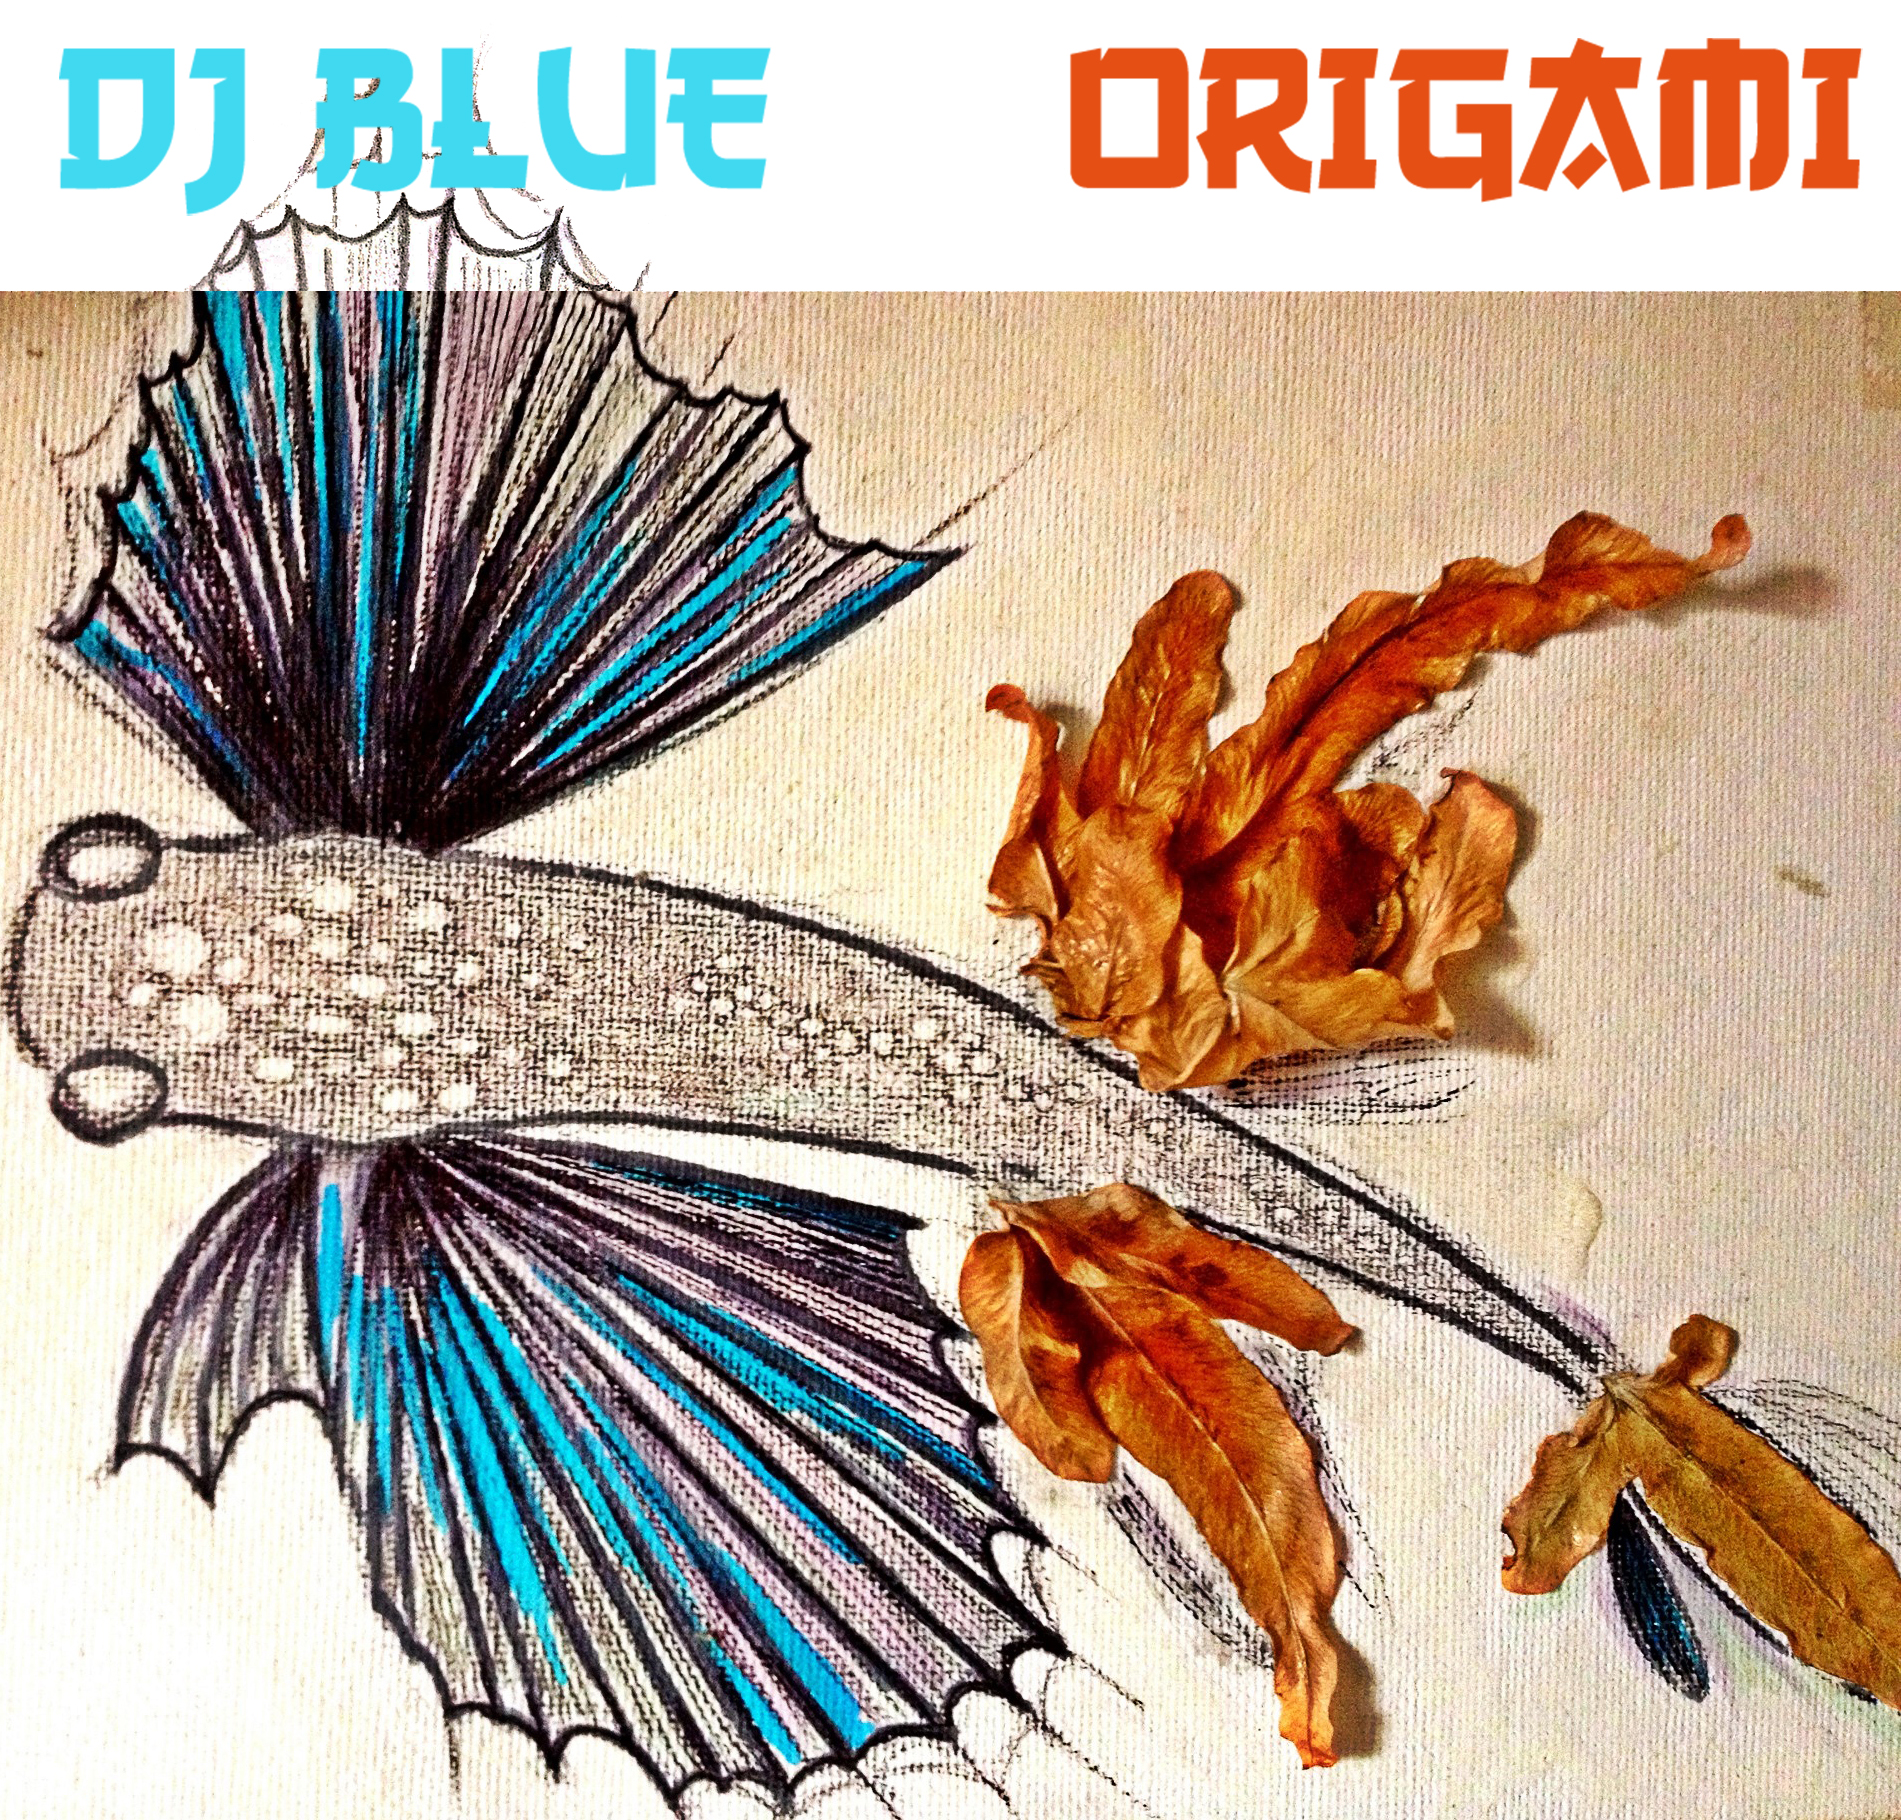 DJ Blue – Origami (Mix)